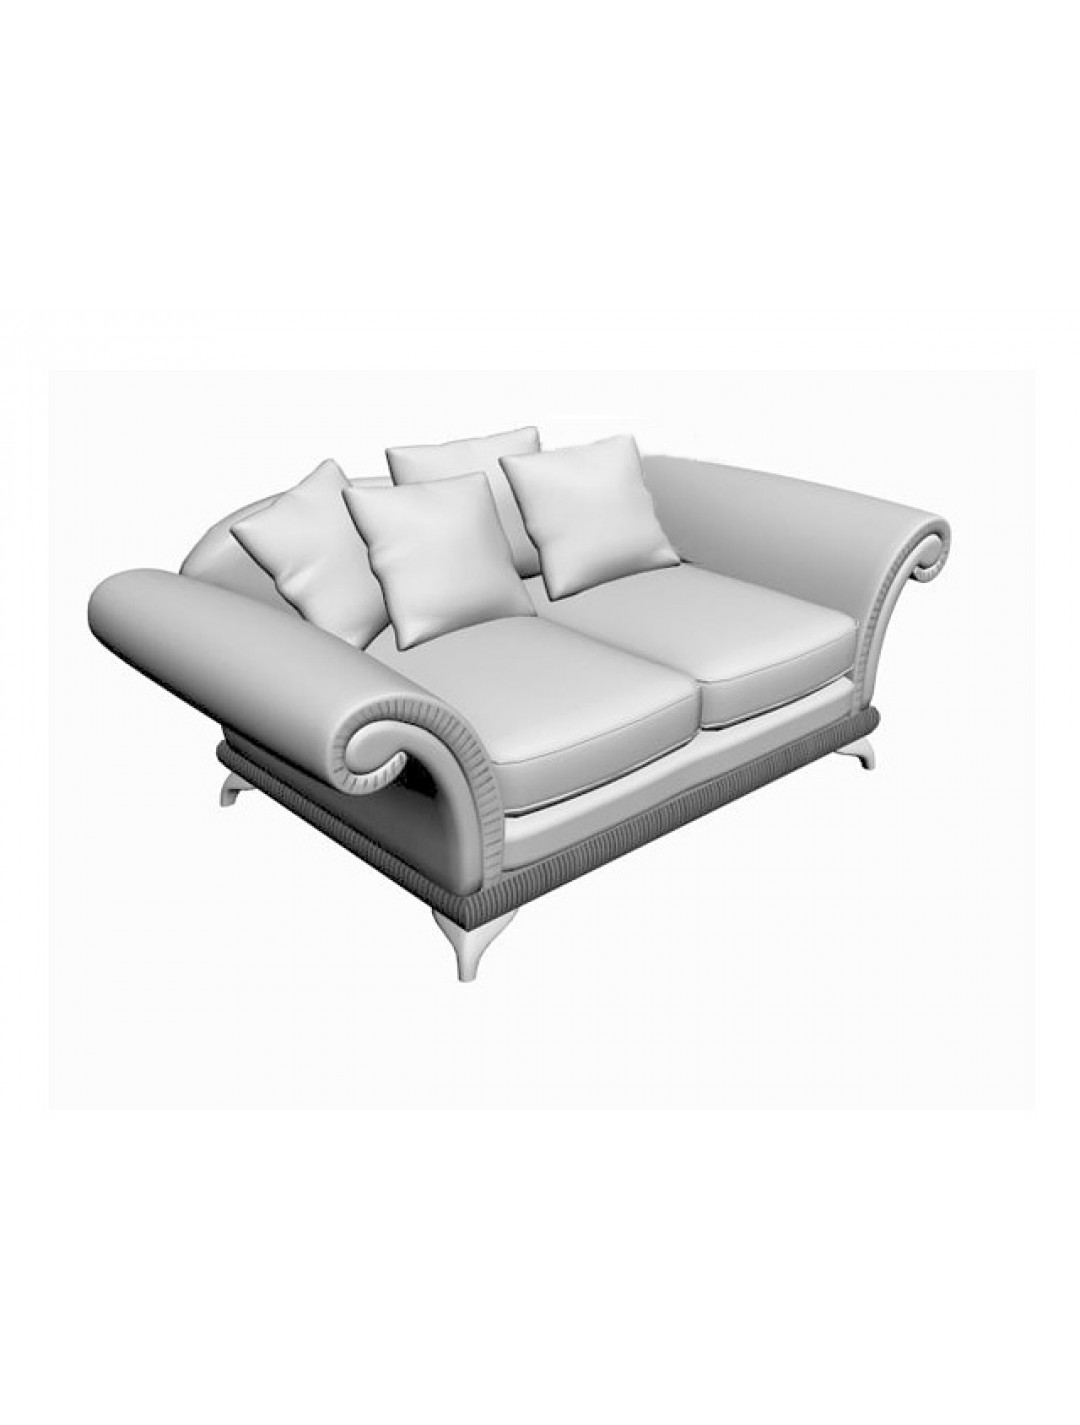 DECO 2-SEATER SOFA, ONE 75*50, TWO 50*50 AND TWO 45*45 LOOSE CUSHIONS INCLUDED, C.O.M.